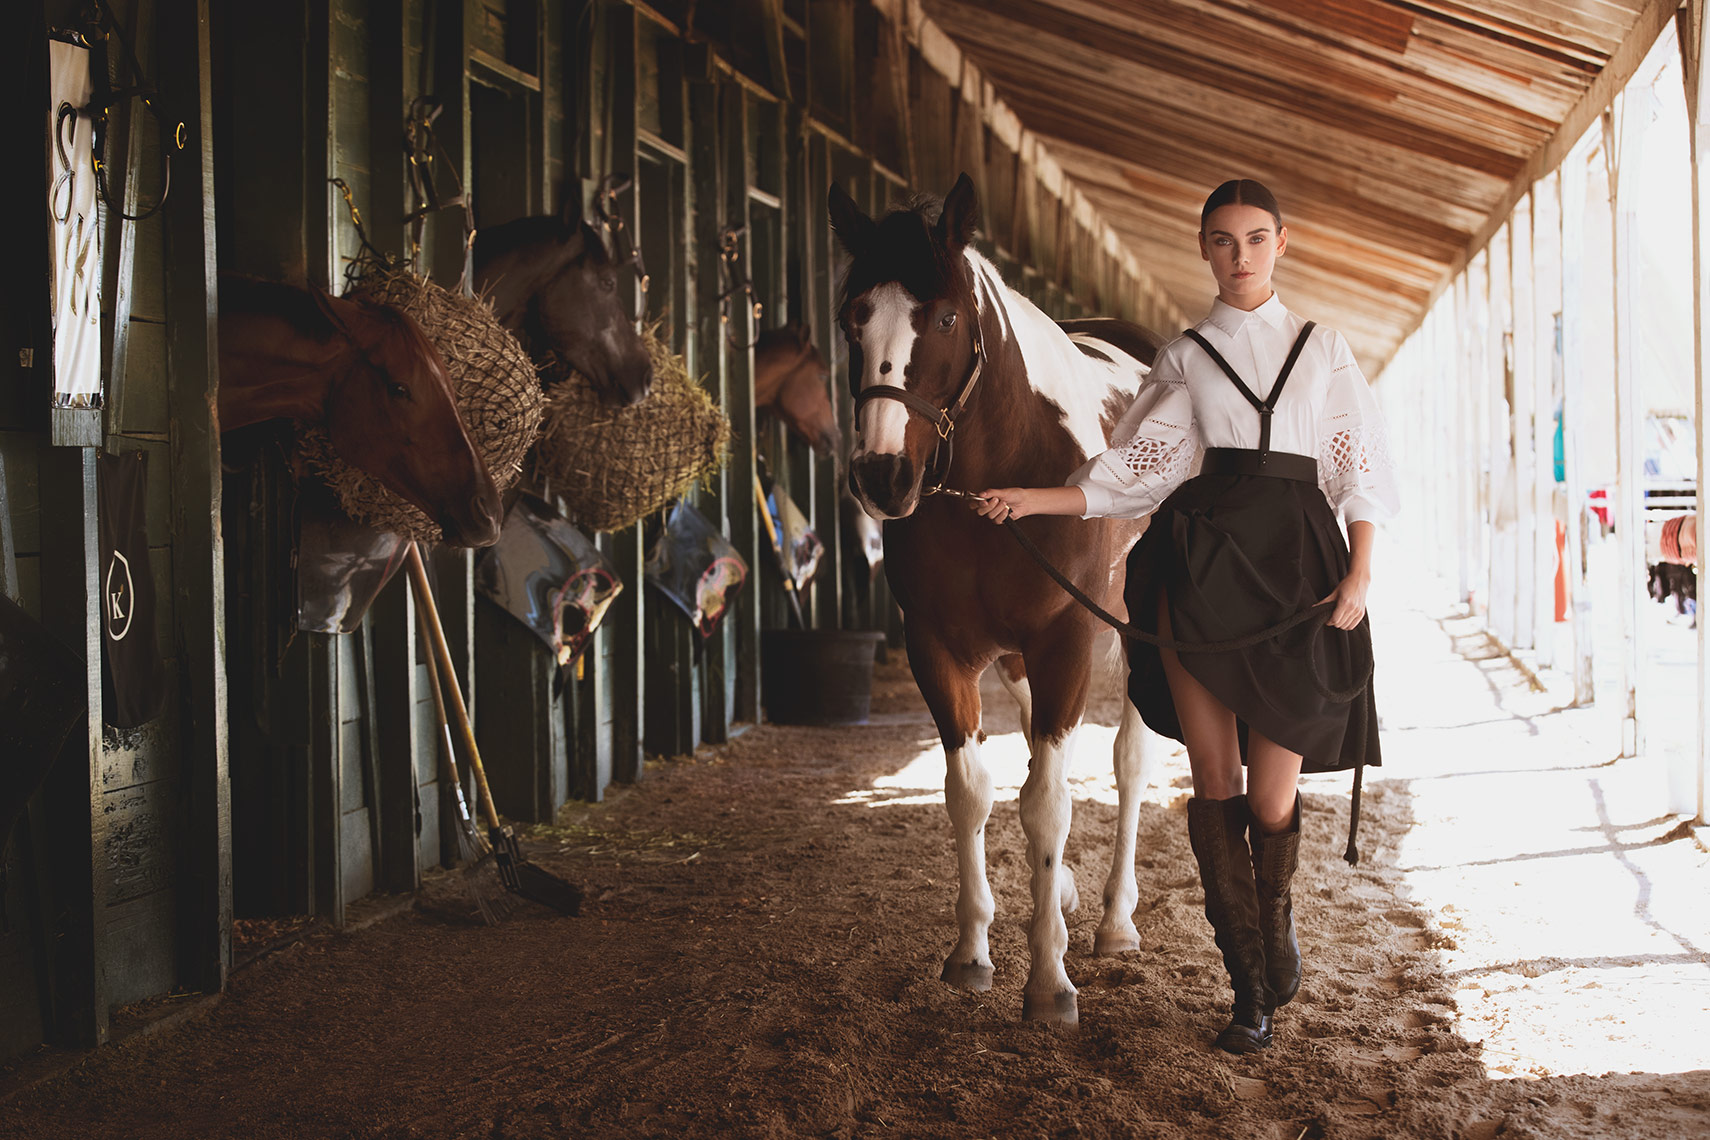 Model walking through stables with Thoroughbred Horse